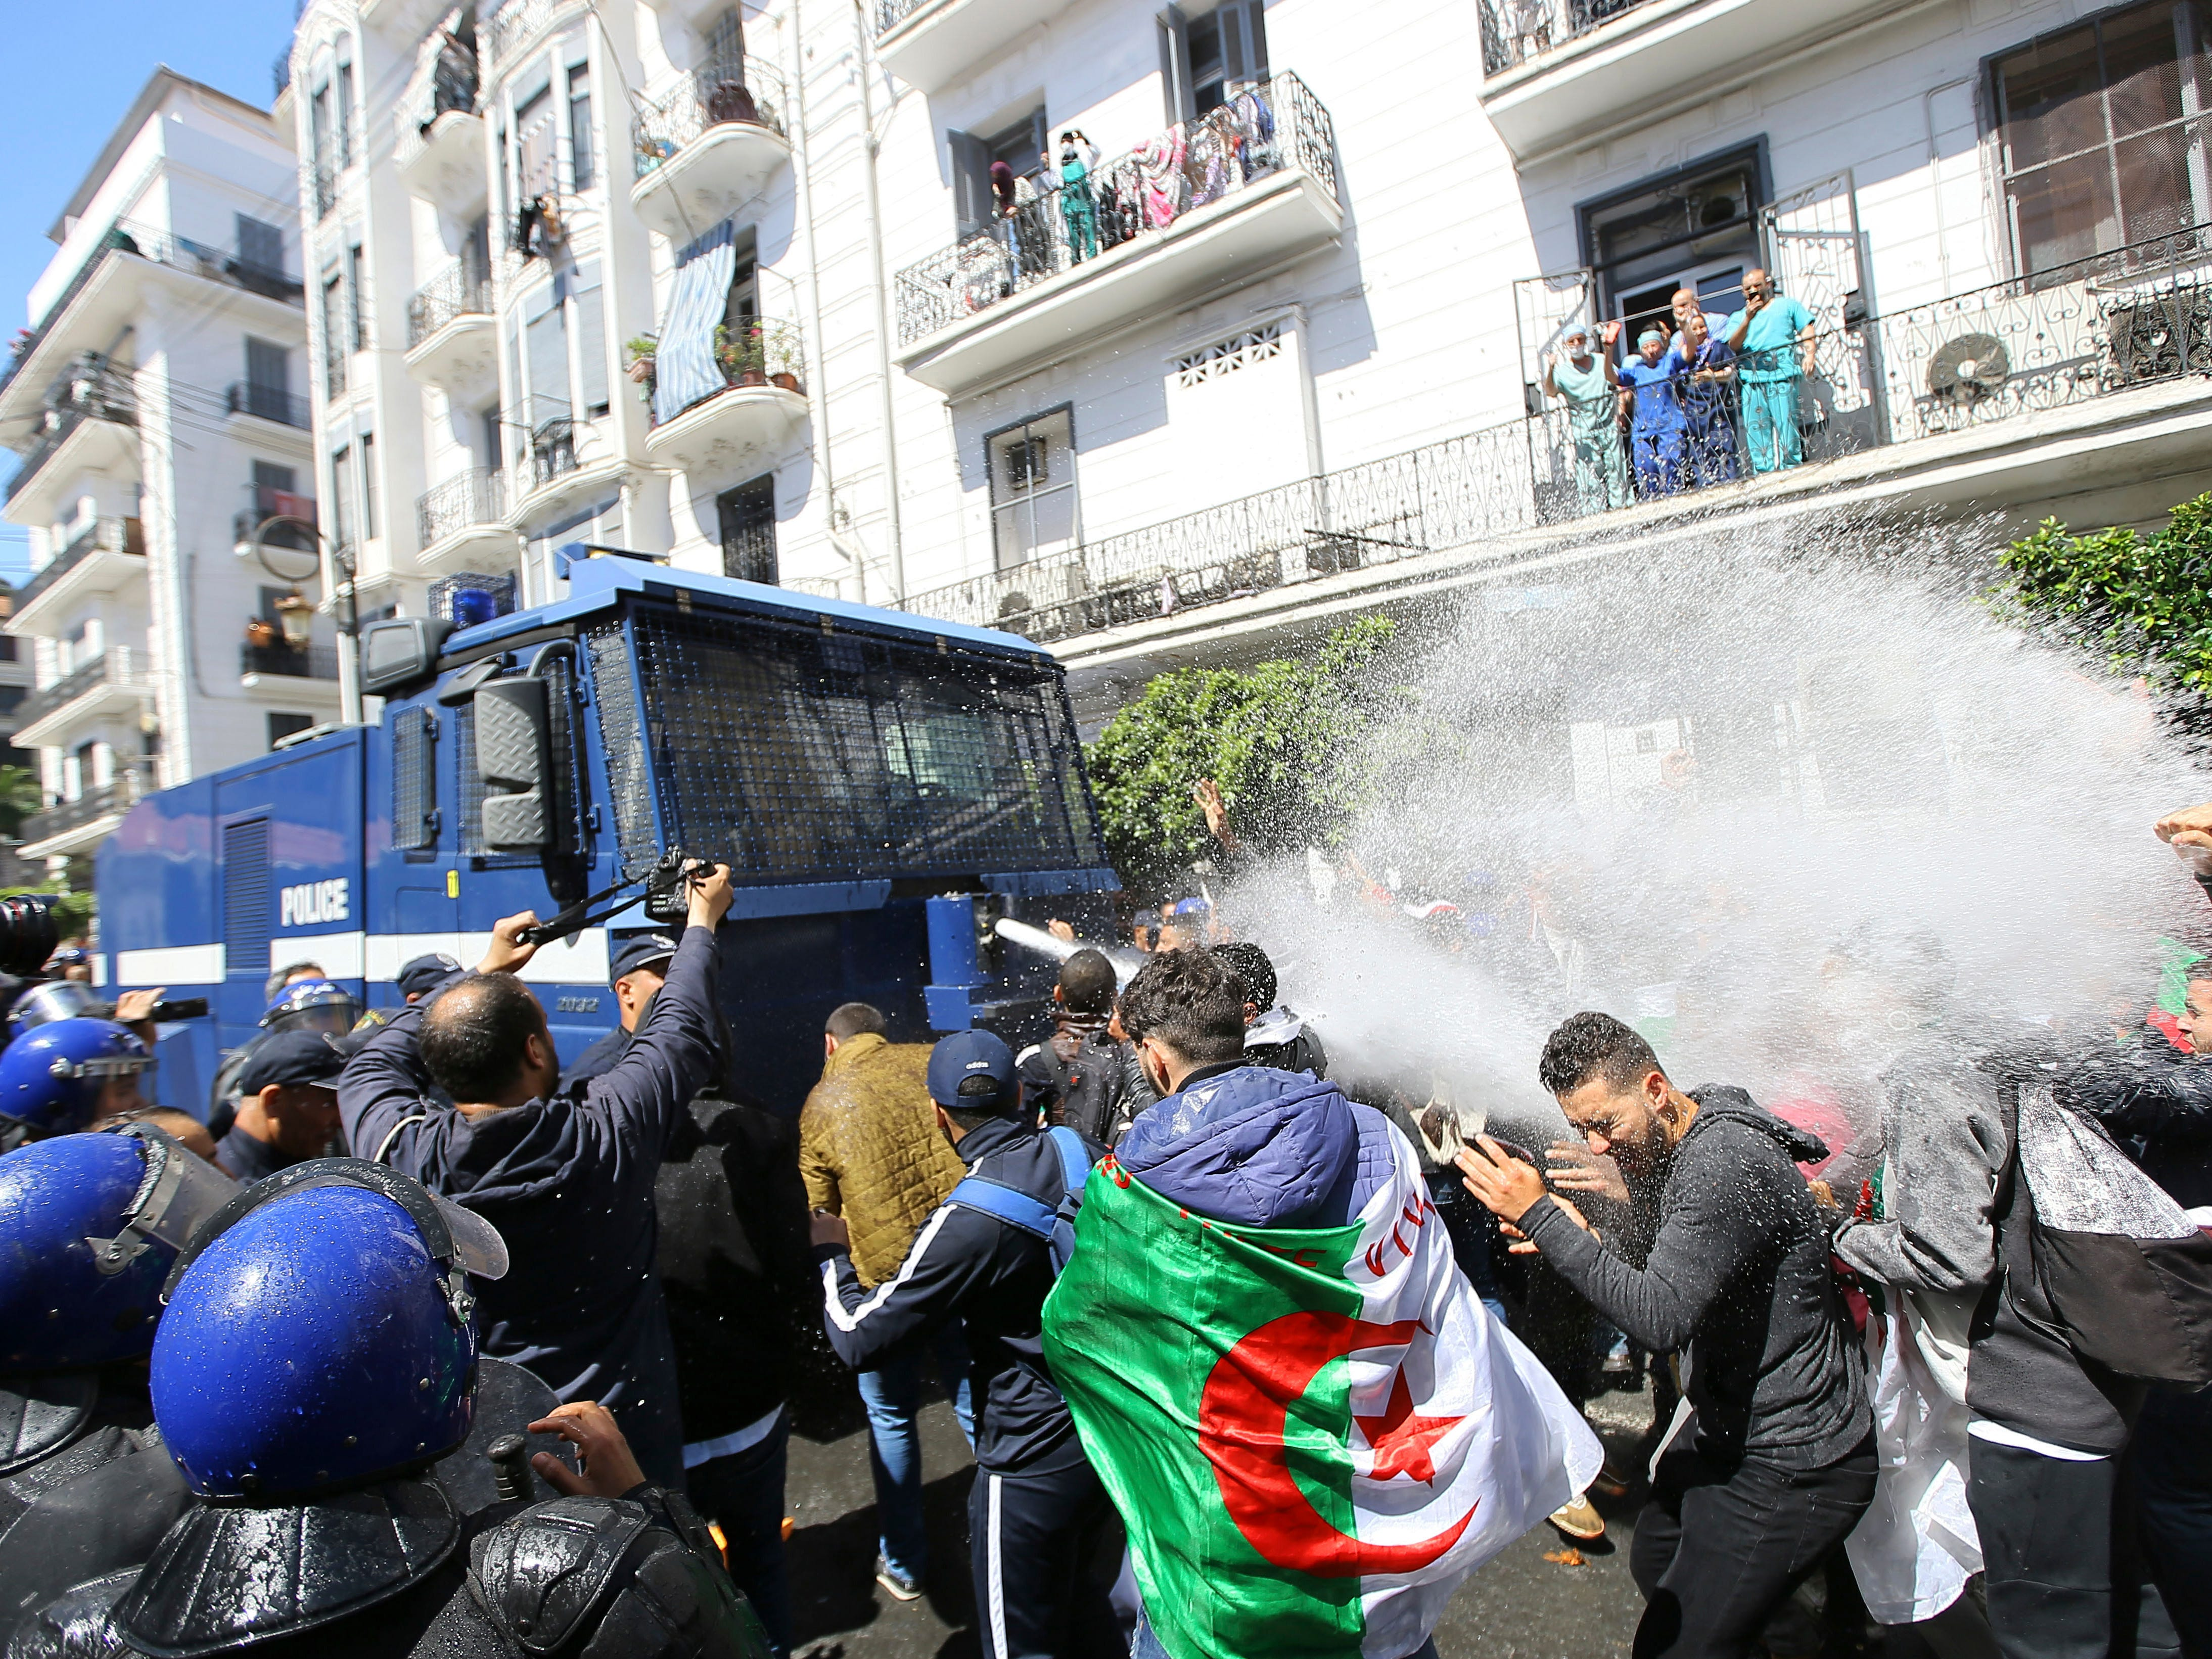 Police forces fire a water cannon at students demonstrating in Algiers, Tuesday, April 9, 2019. Algerian police have also used tear gas to disperse protesters in the capital, less than an hour after the country's parliament chose an interim leader.